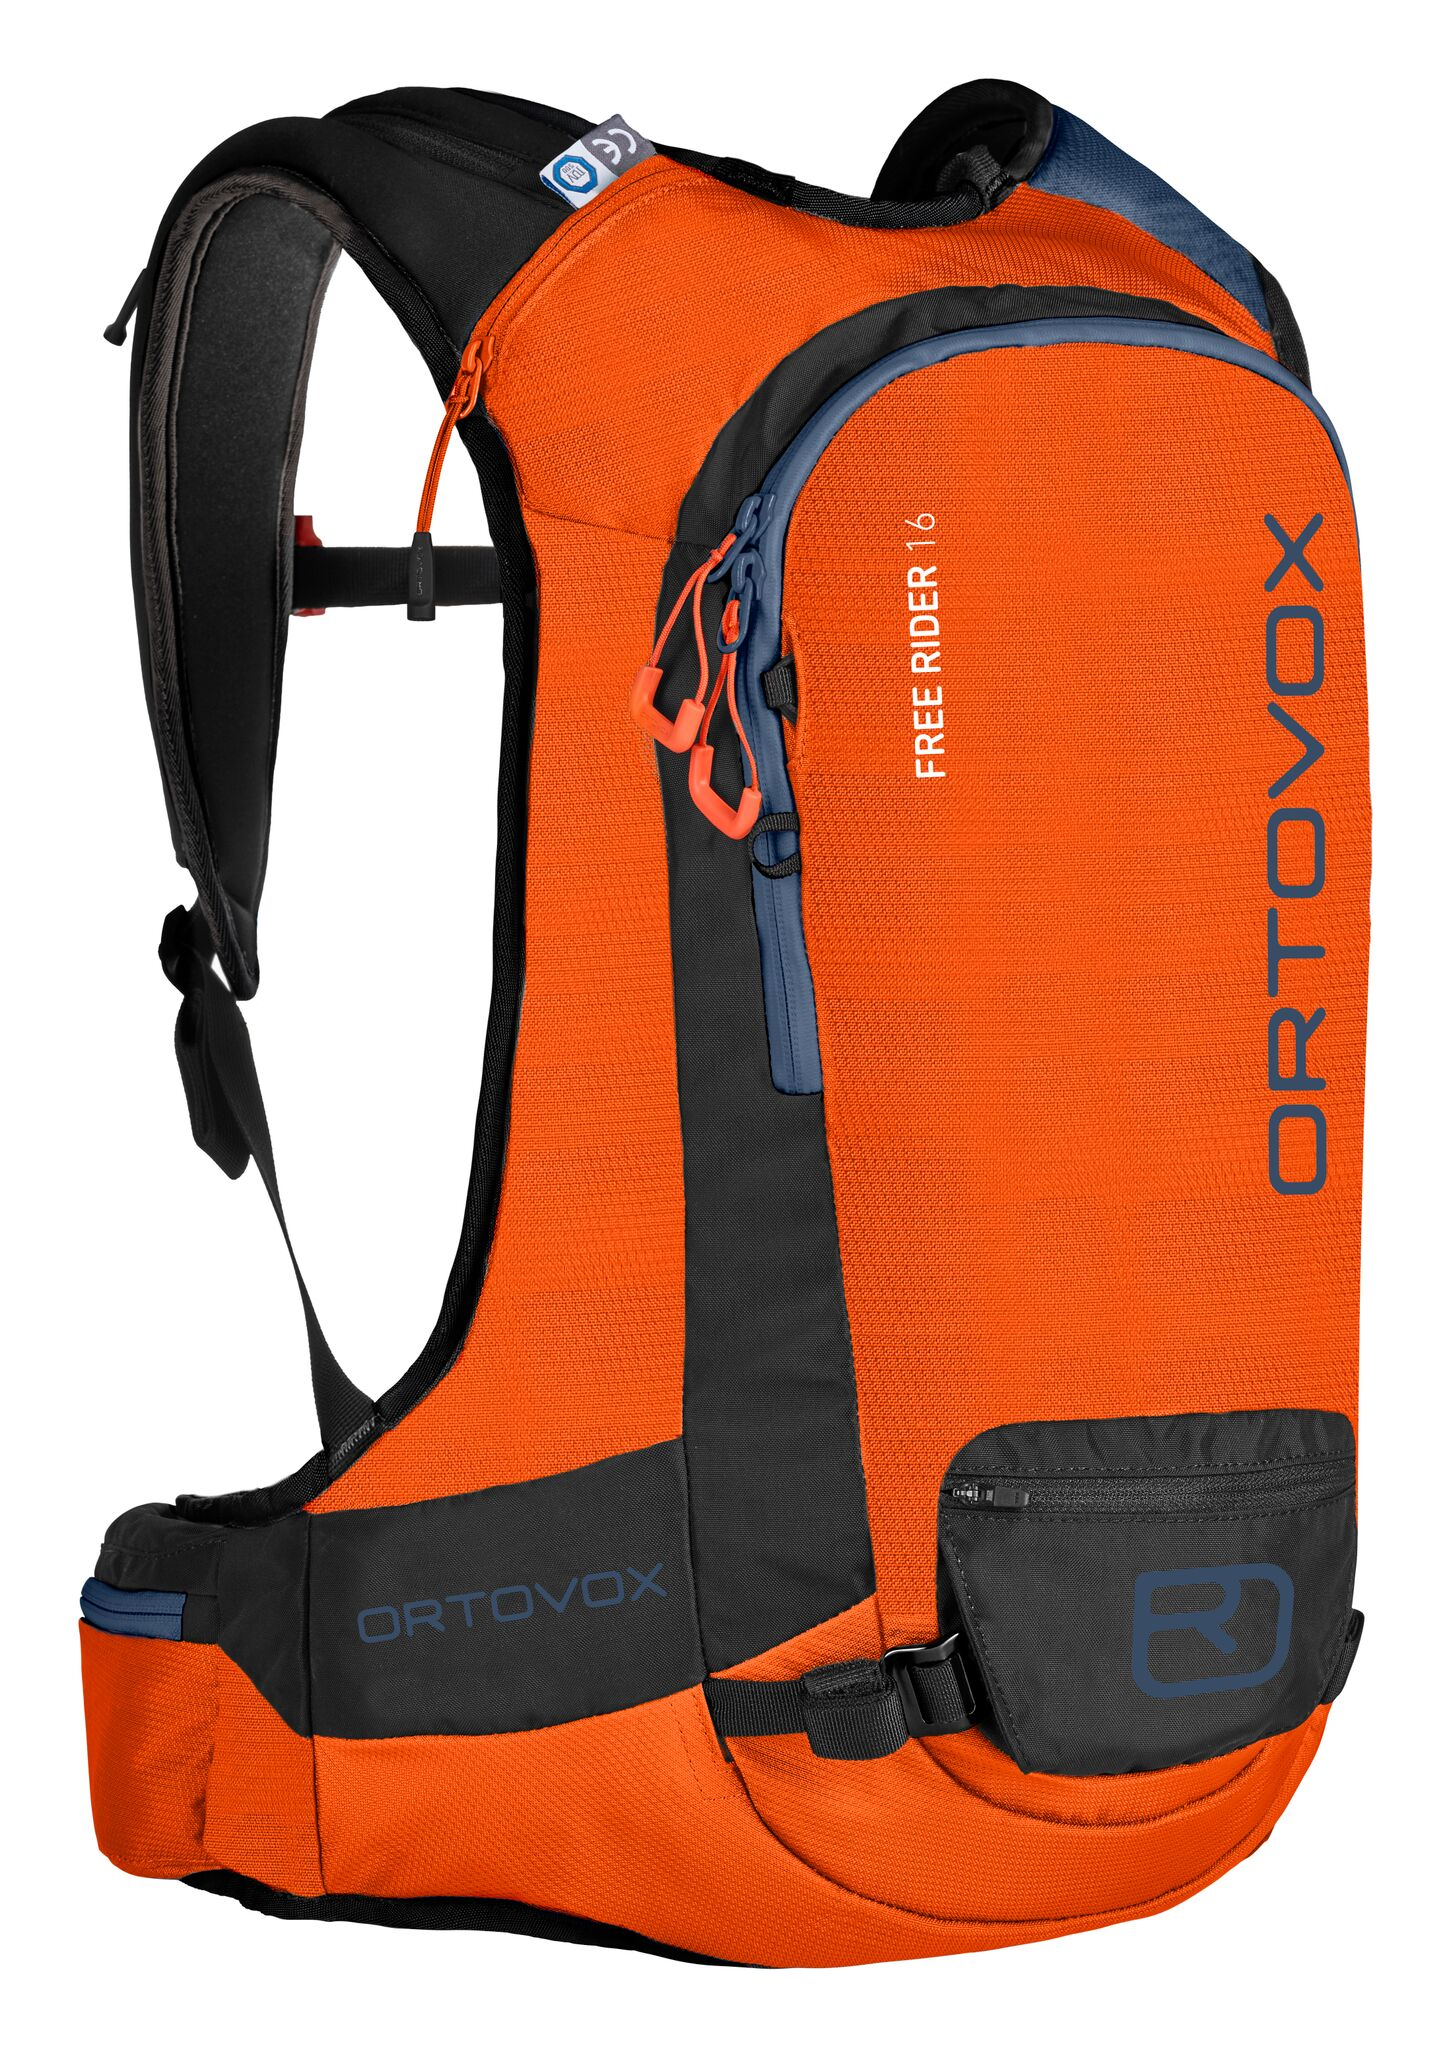 Ortovox Freerider 16L - Crazy Orange - Front view - safety compartments, attachments and loops